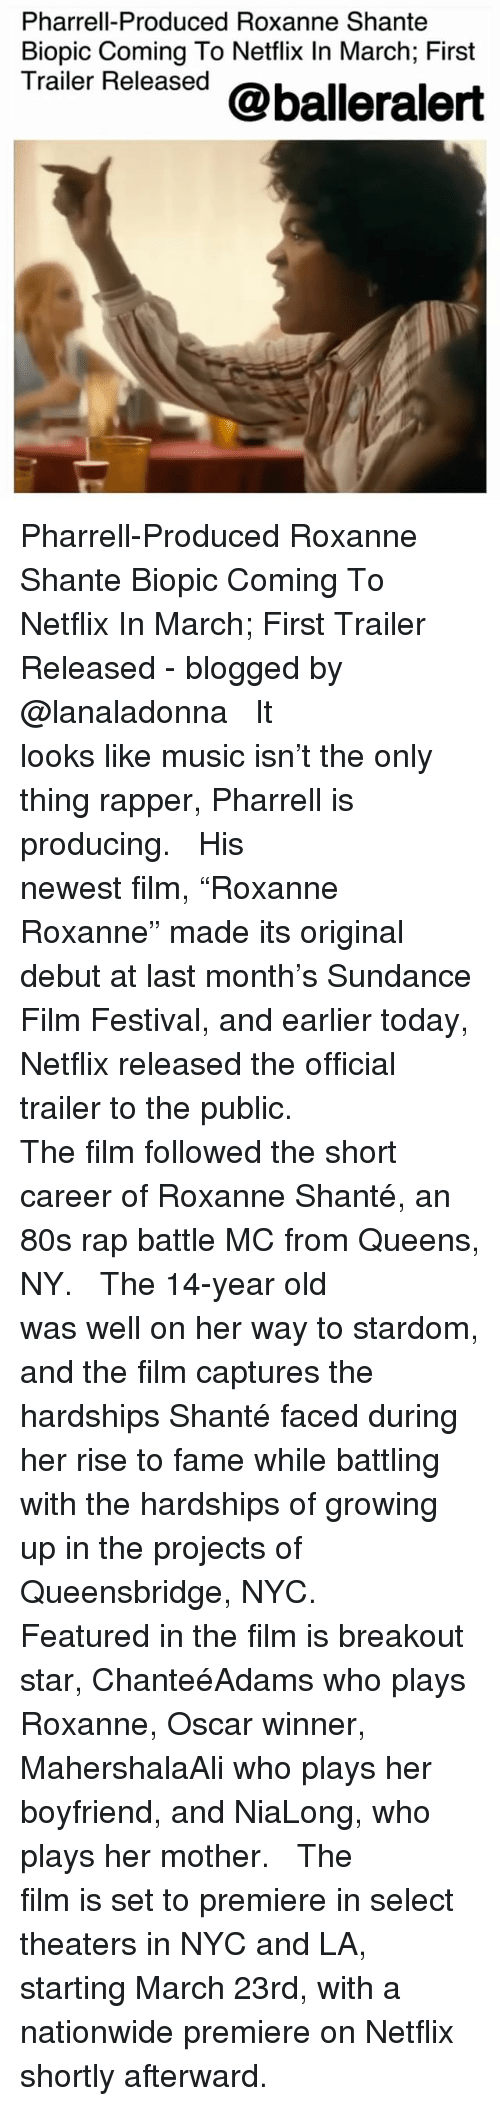 "pharrell: Pharrell-Produced Roxanne Shante  Biopic Coming To Netflix In March; First  Trailer Released @balleralert Pharrell-Produced Roxanne Shante Biopic Coming To Netflix In March; First Trailer Released - blogged by @lanaladonna ⠀⠀⠀⠀⠀⠀⠀ ⠀⠀⠀⠀⠀⠀⠀ It looks like music isn't the only thing rapper, Pharrell is producing. ⠀⠀⠀⠀⠀⠀⠀ ⠀⠀⠀⠀⠀⠀⠀ His newest film, ""Roxanne Roxanne"" made its original debut at last month's Sundance Film Festival, and earlier today, Netflix released the official trailer to the public. ⠀⠀⠀⠀⠀⠀⠀ ⠀⠀⠀⠀⠀⠀⠀ The film followed the short career of Roxanne Shanté, an 80s rap battle MC from Queens, NY. ⠀⠀⠀⠀⠀⠀⠀ ⠀⠀⠀⠀⠀⠀⠀ The 14-year old was well on her way to stardom, and the film captures the hardships Shanté faced during her rise to fame while battling with the hardships of growing up in the projects of Queensbridge, NYC. ⠀⠀⠀⠀⠀⠀⠀ ⠀⠀⠀⠀⠀⠀⠀ Featured in the film is breakout star, ChanteéAdams who plays Roxanne, Oscar winner, MahershalaAli who plays her boyfriend, and NiaLong, who plays her mother. ⠀⠀⠀⠀⠀⠀⠀ ⠀⠀⠀⠀⠀⠀⠀ The film is set to premiere in select theaters in NYC and LA, starting March 23rd, with a nationwide premiere on Netflix shortly afterward."